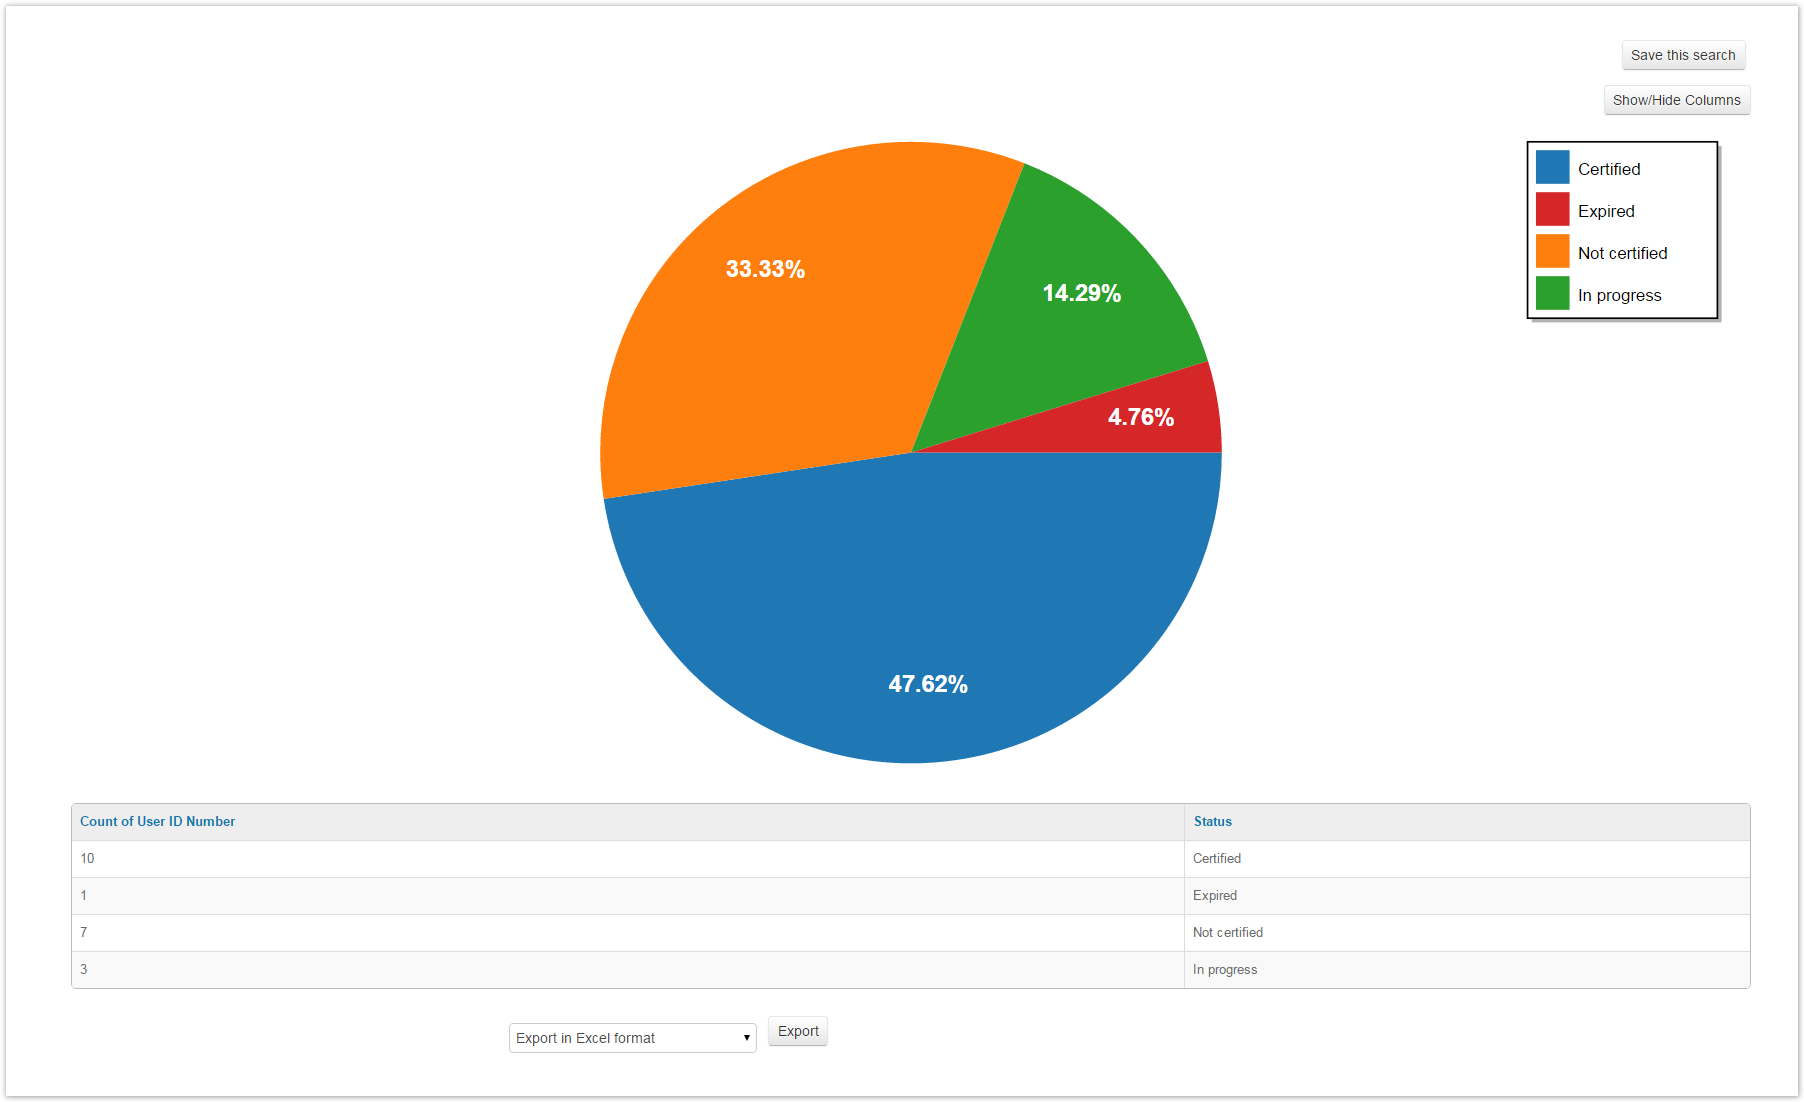 Graphical reporting certification completion status pie chart nvjuhfo Image collections